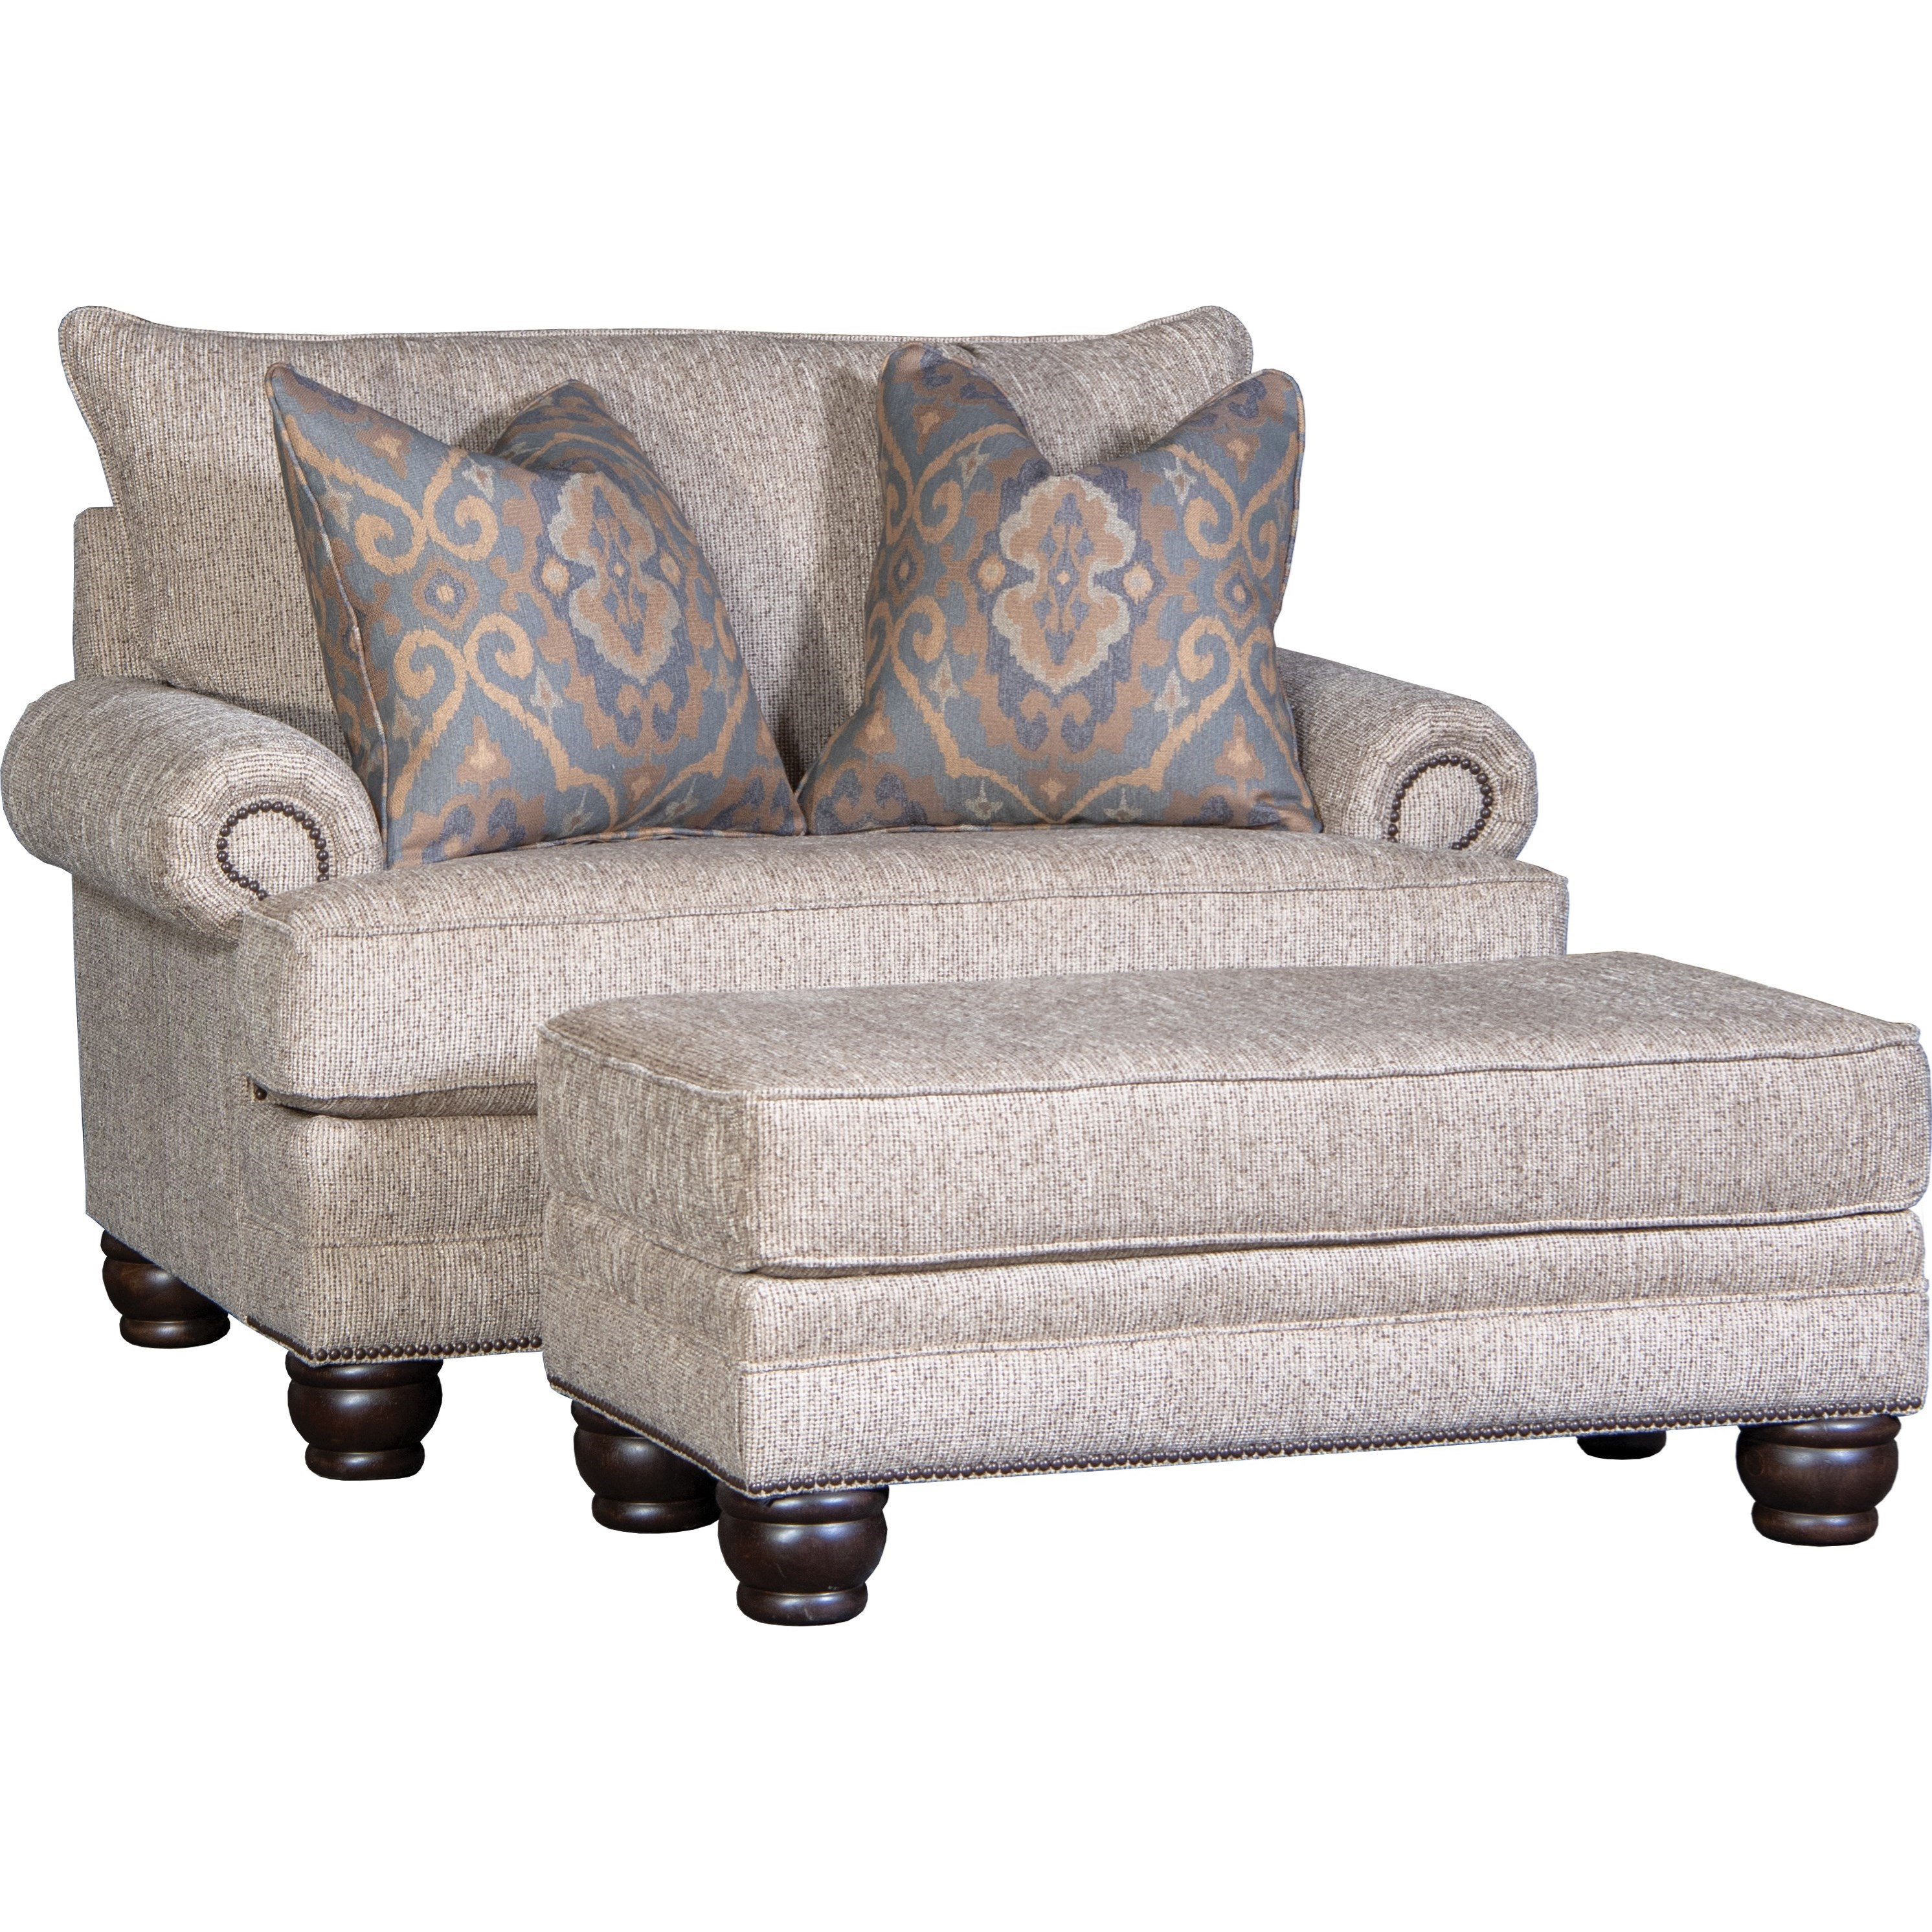 5260 Chair & Ottoman Set by Mayo at Wilson's Furniture